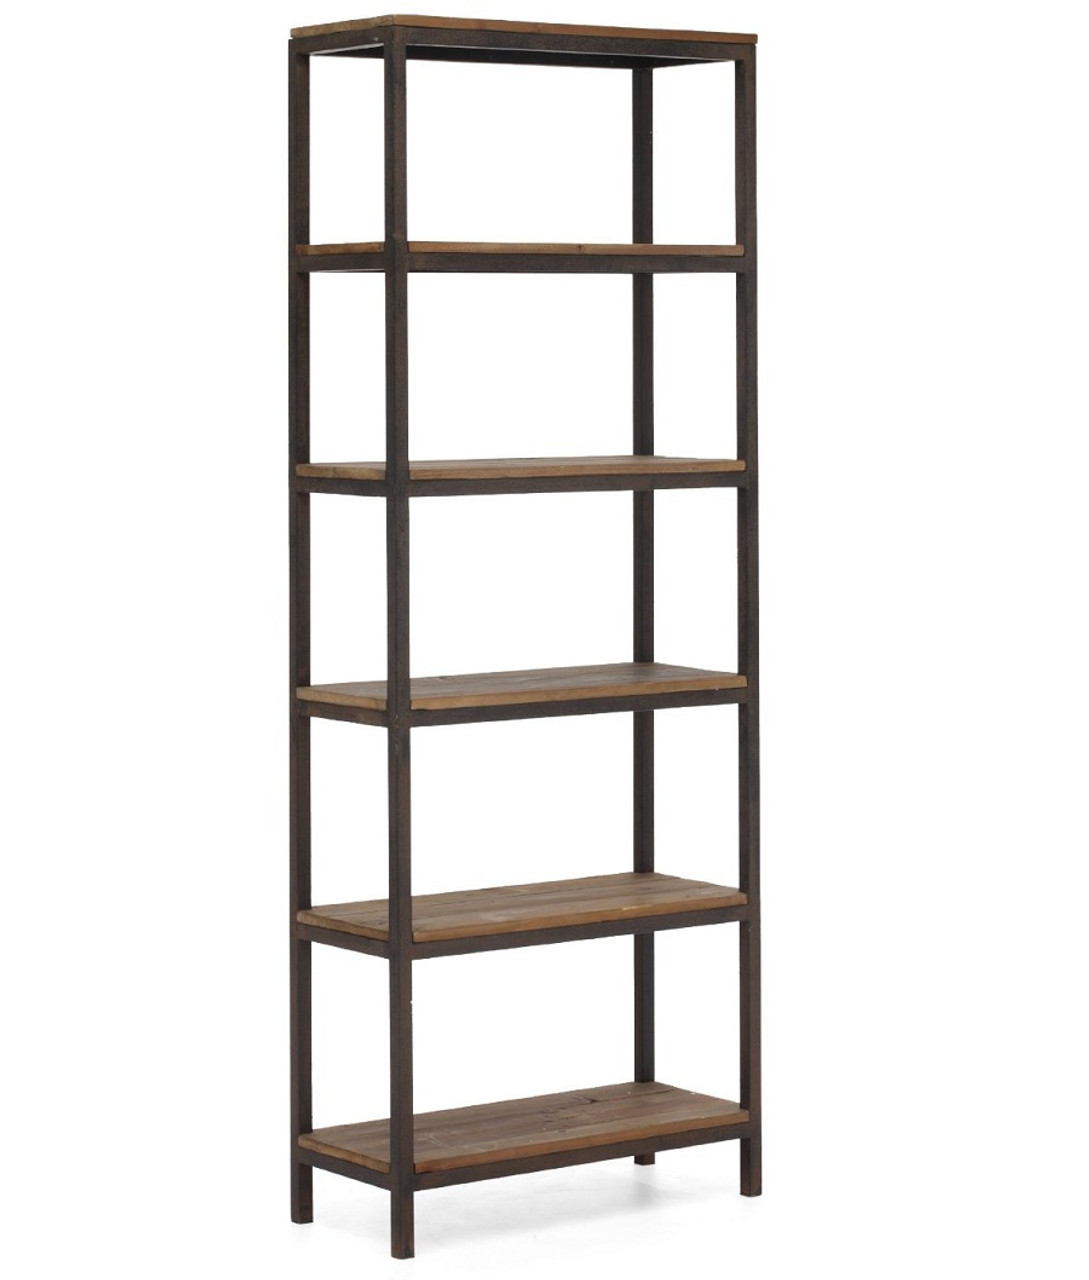 bookshelf w metal store shelves solid browse bookcases ihrm wood media simien m furnishings product bookcase frame prm reside